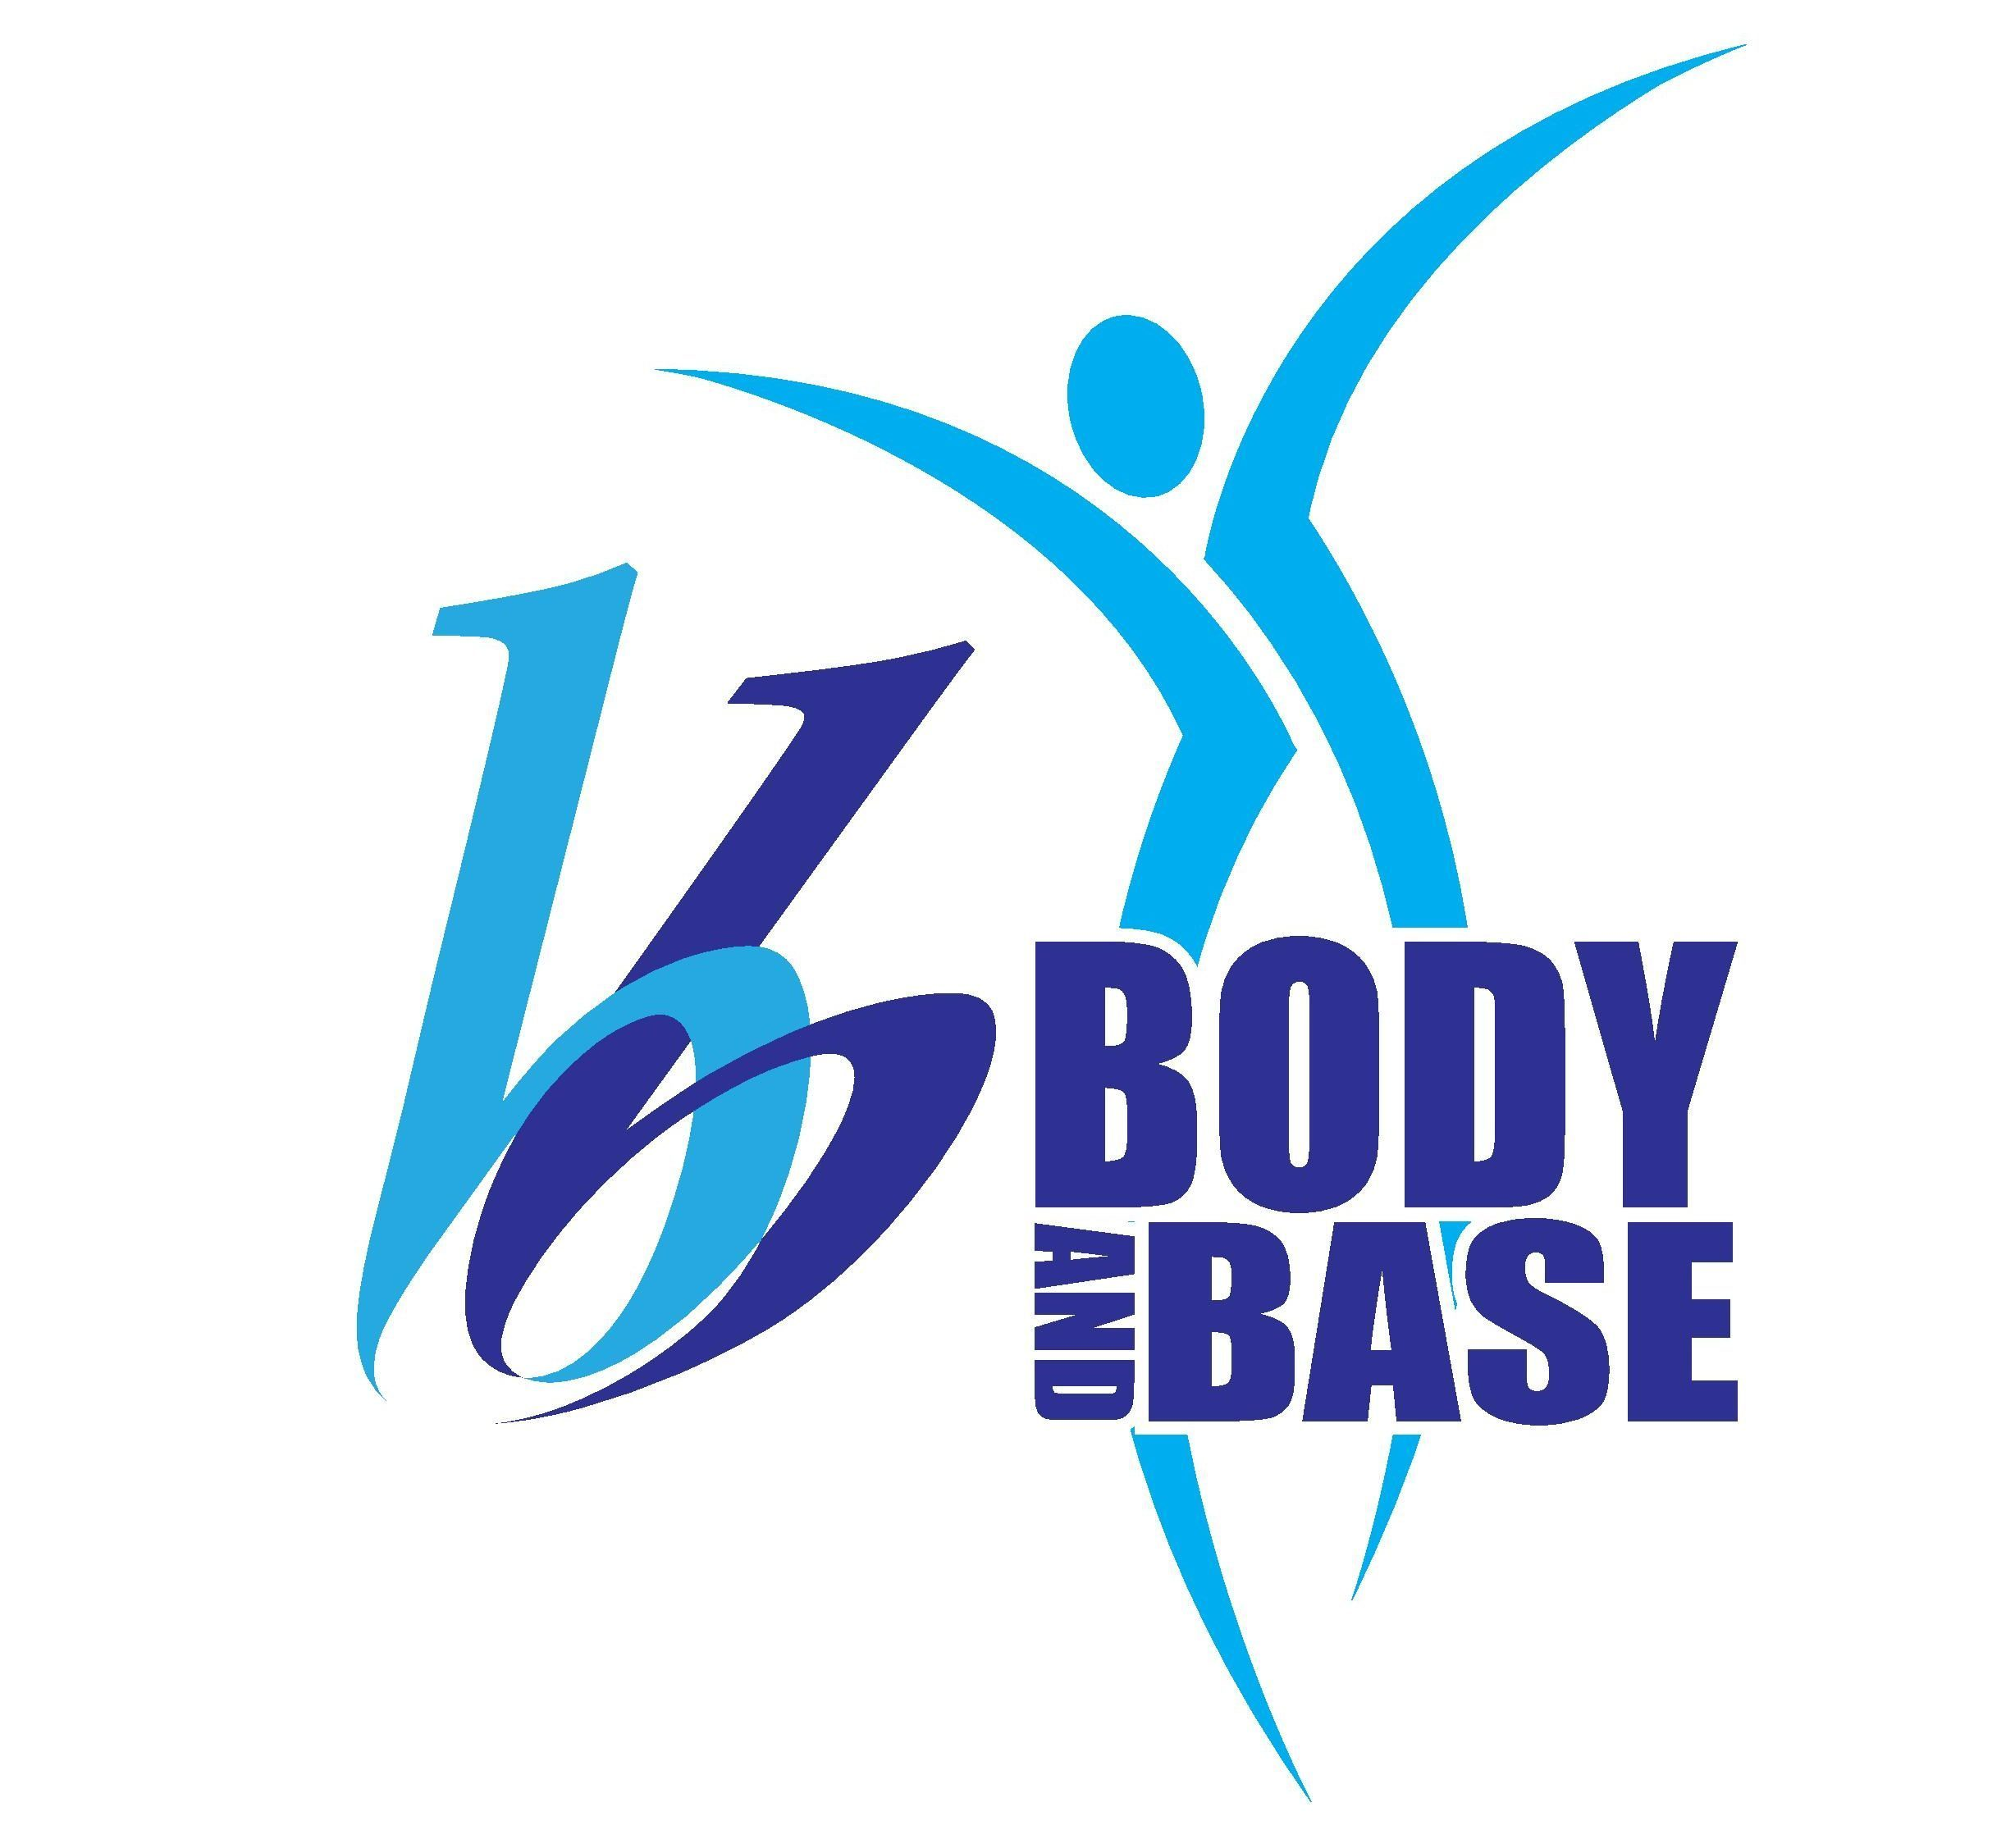 Body and Base